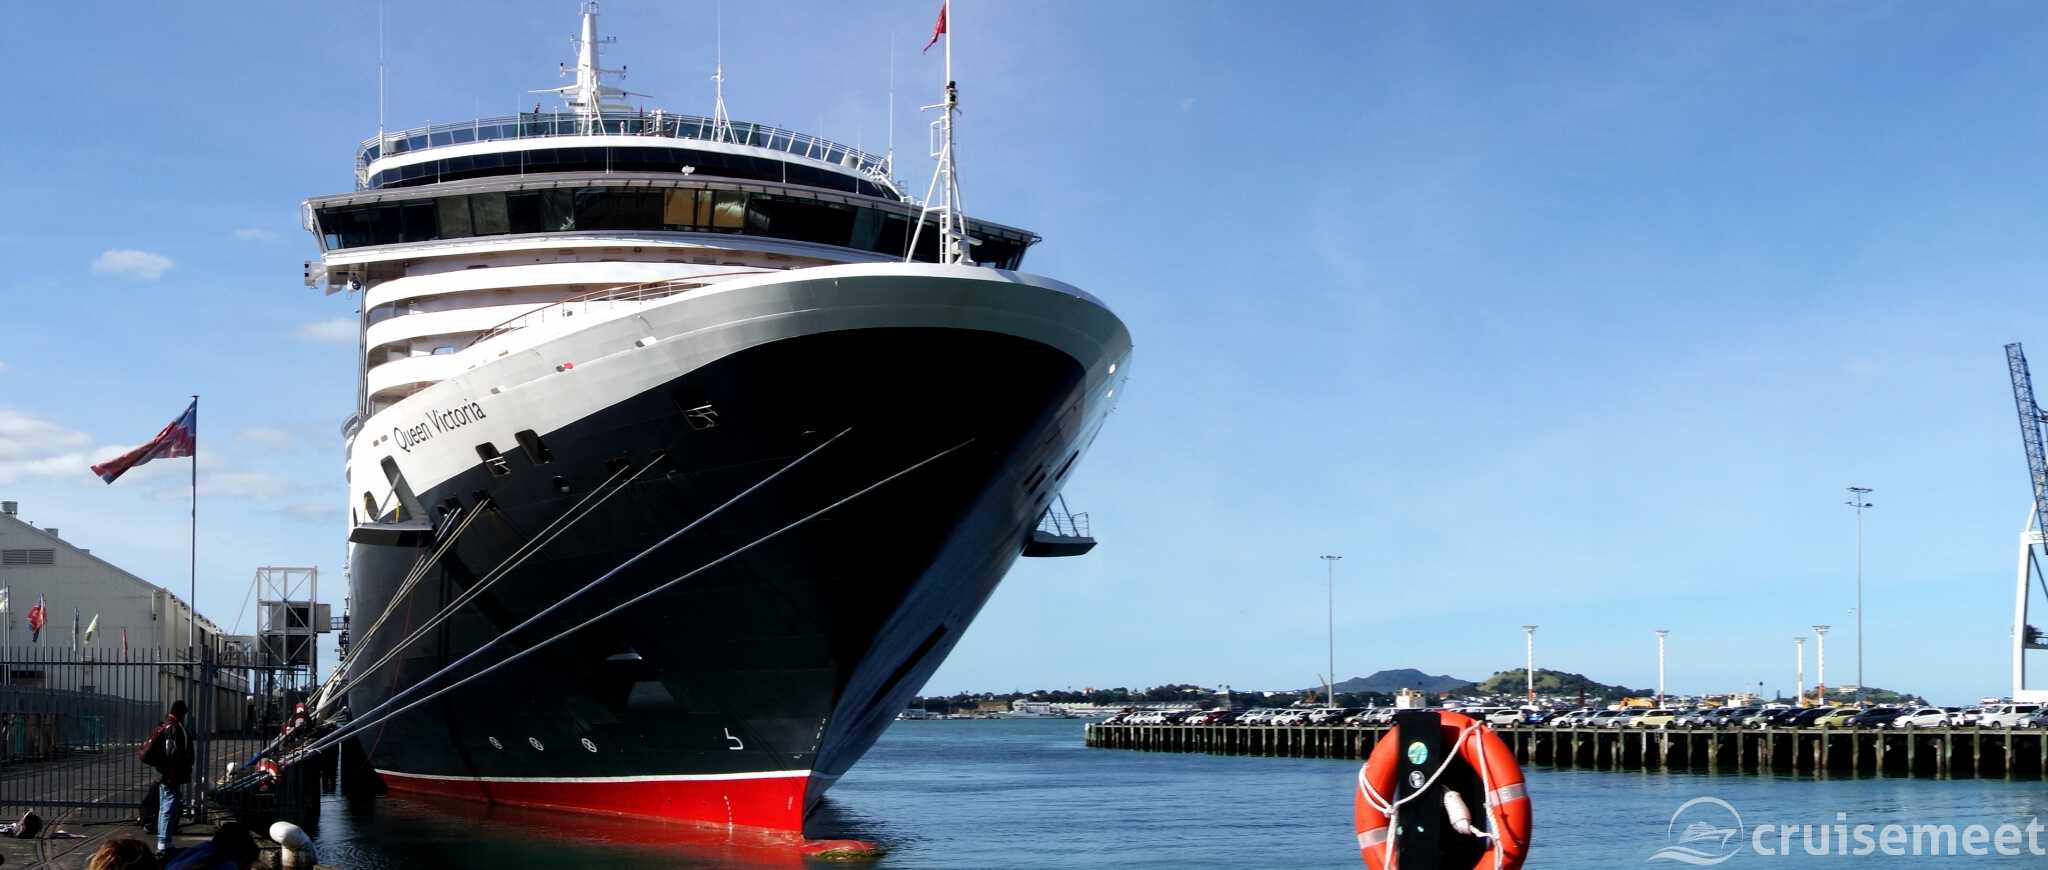 Queen Victoria bow view at Queen's Wharf, Auckland, New Zealand